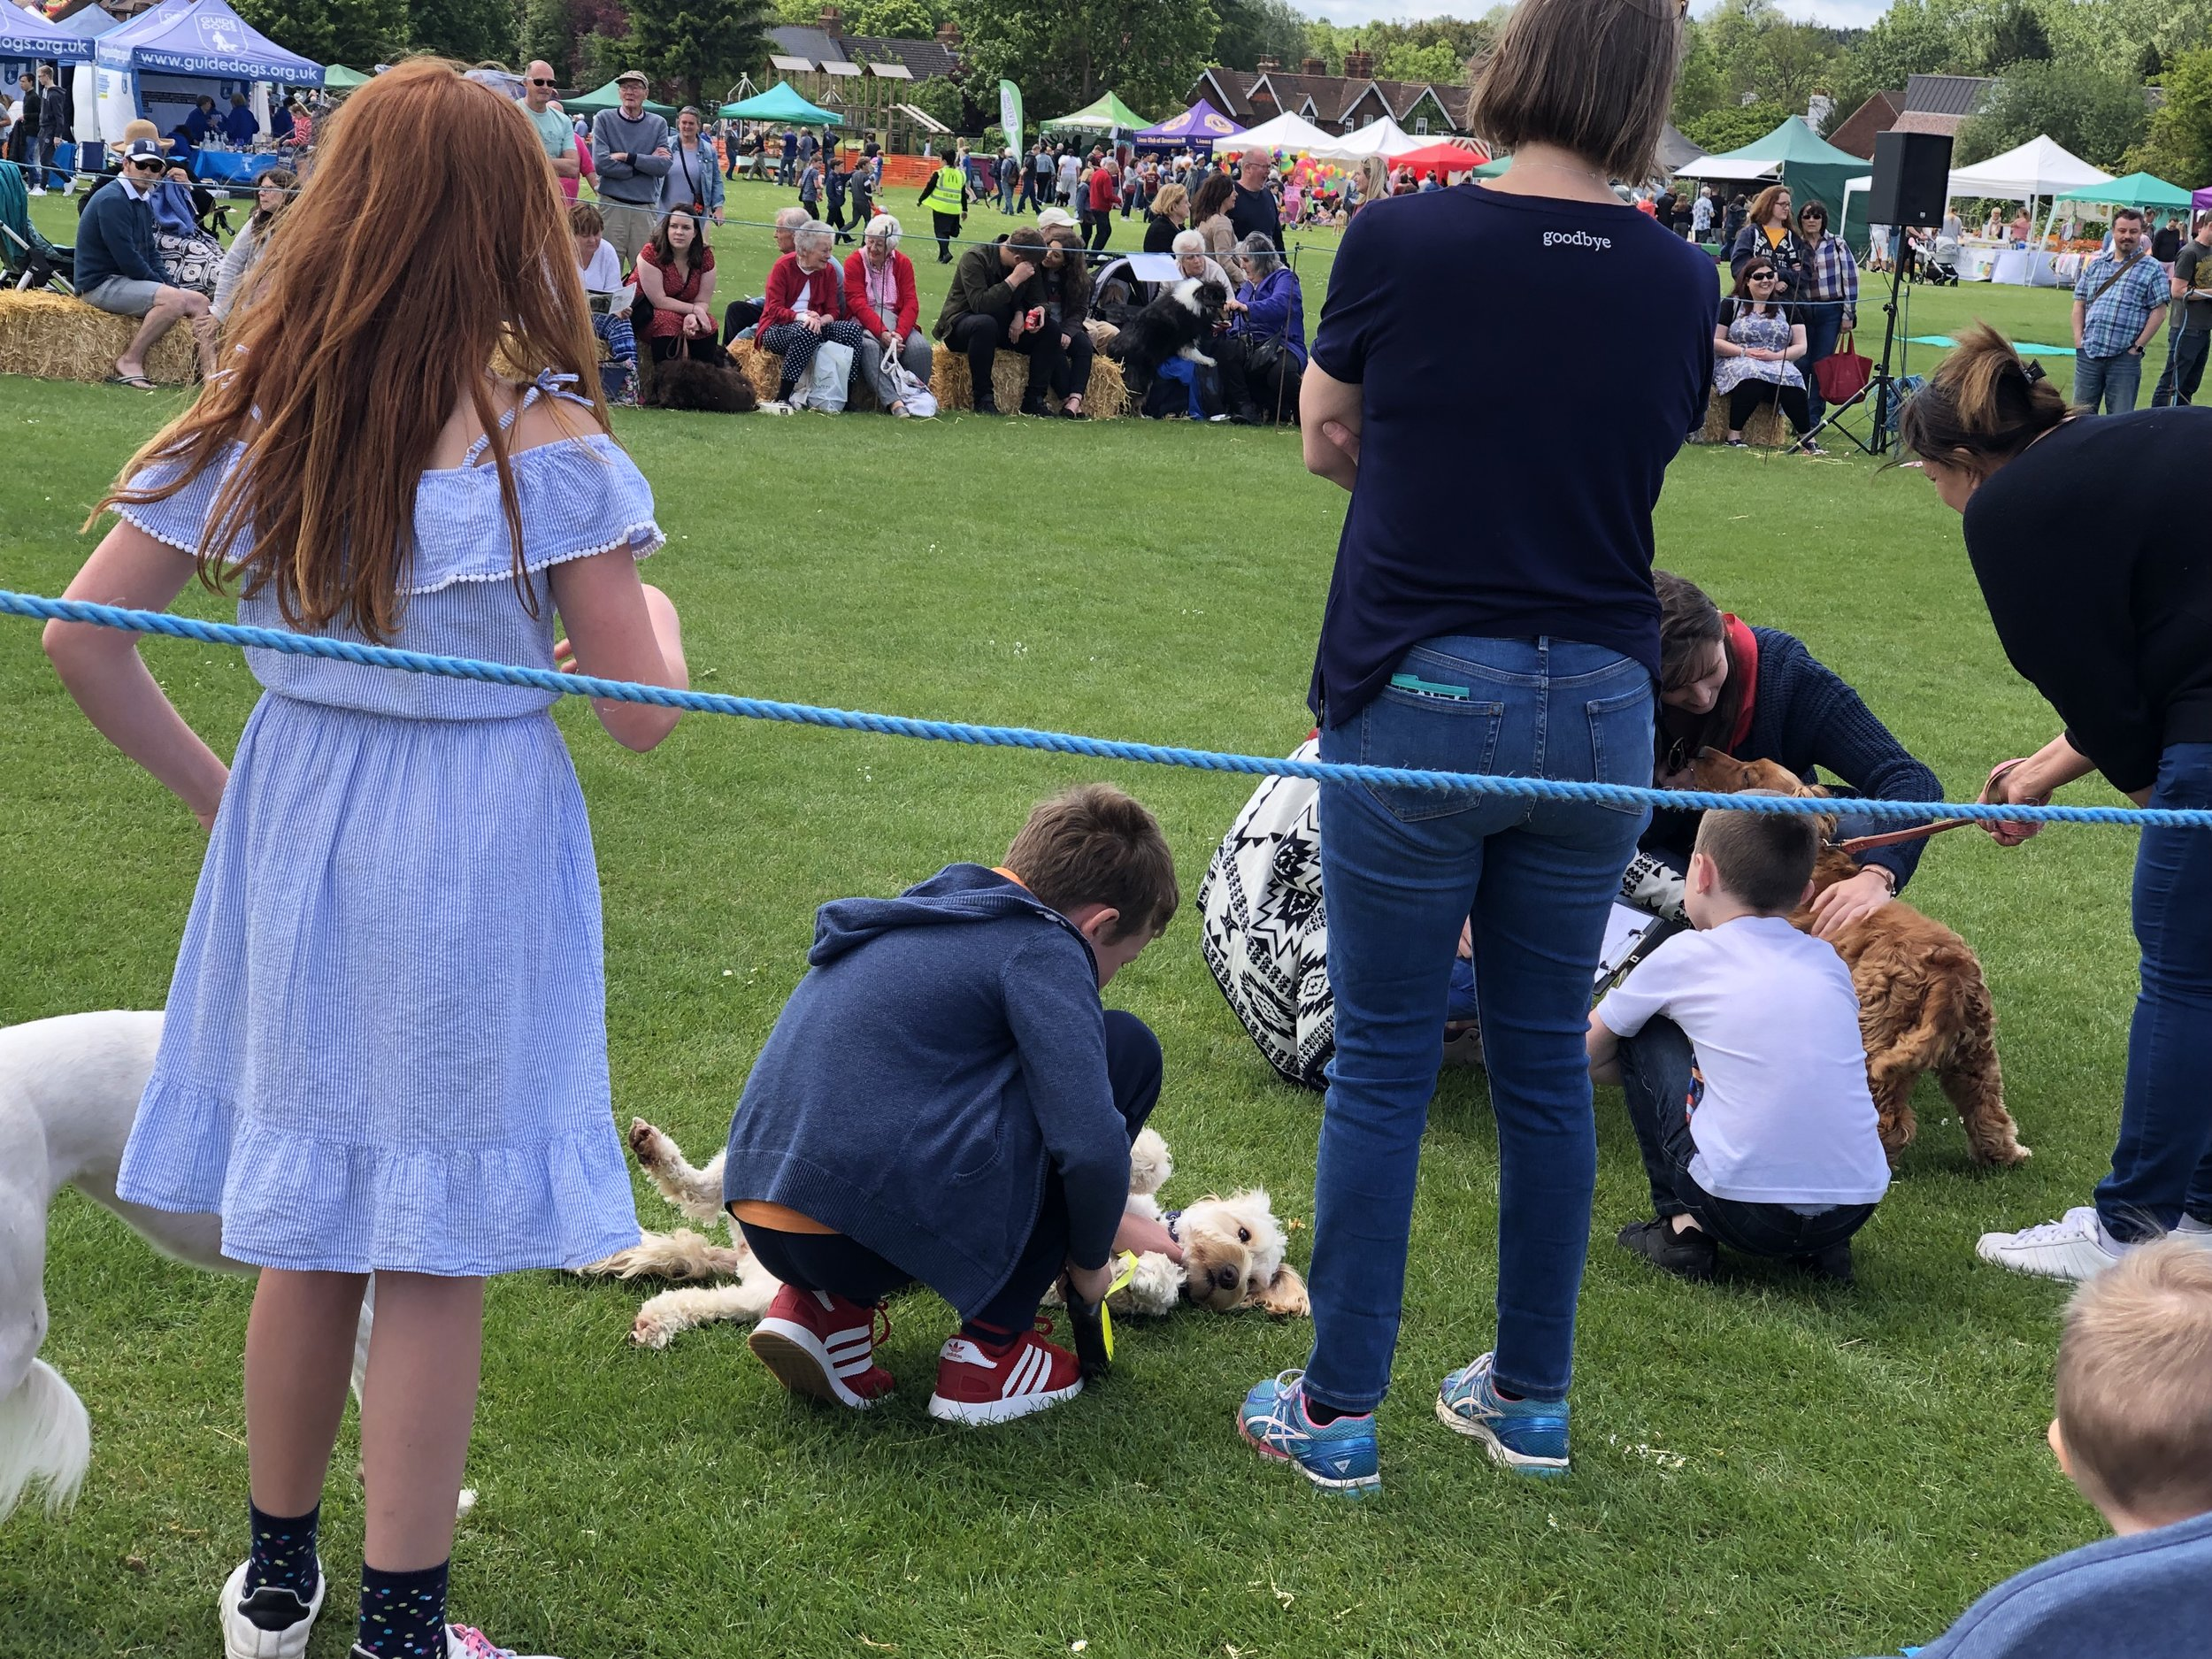 Cute dog being judged at the dog show.jpeg